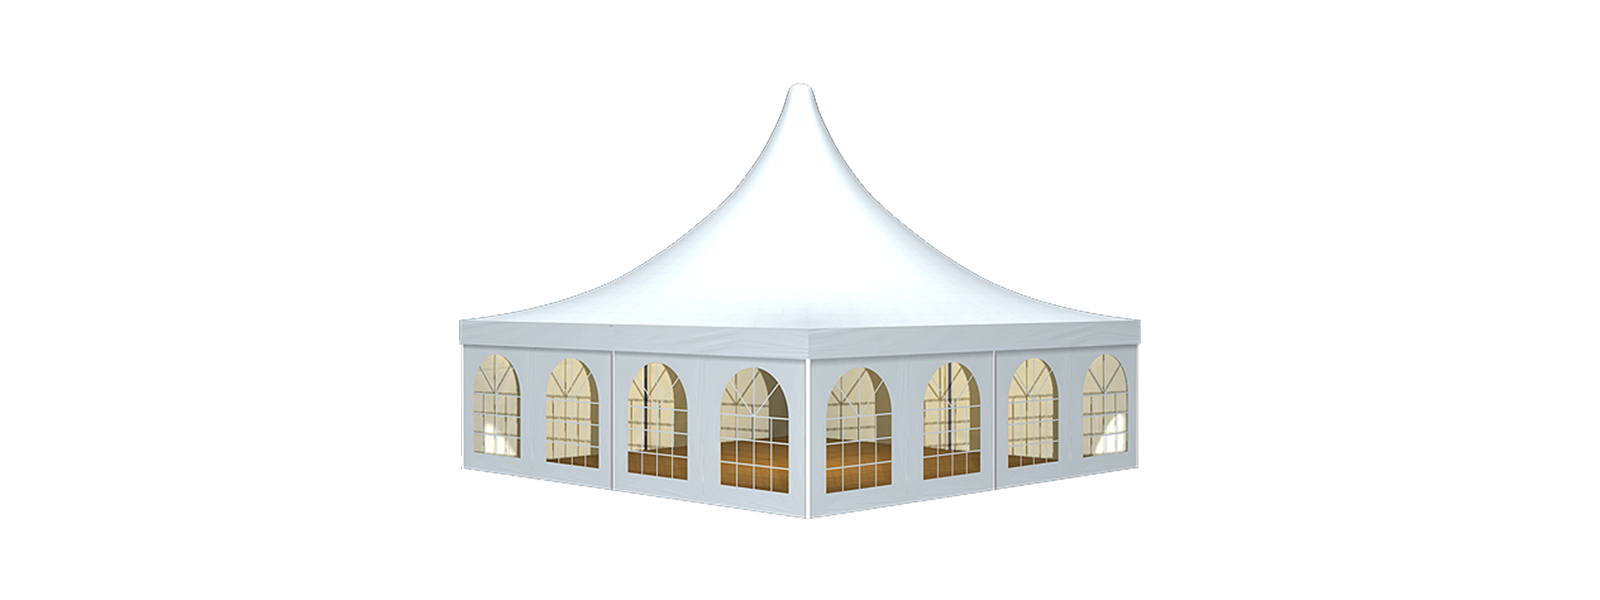 Produkt Event Pagode Highlight C-Tents